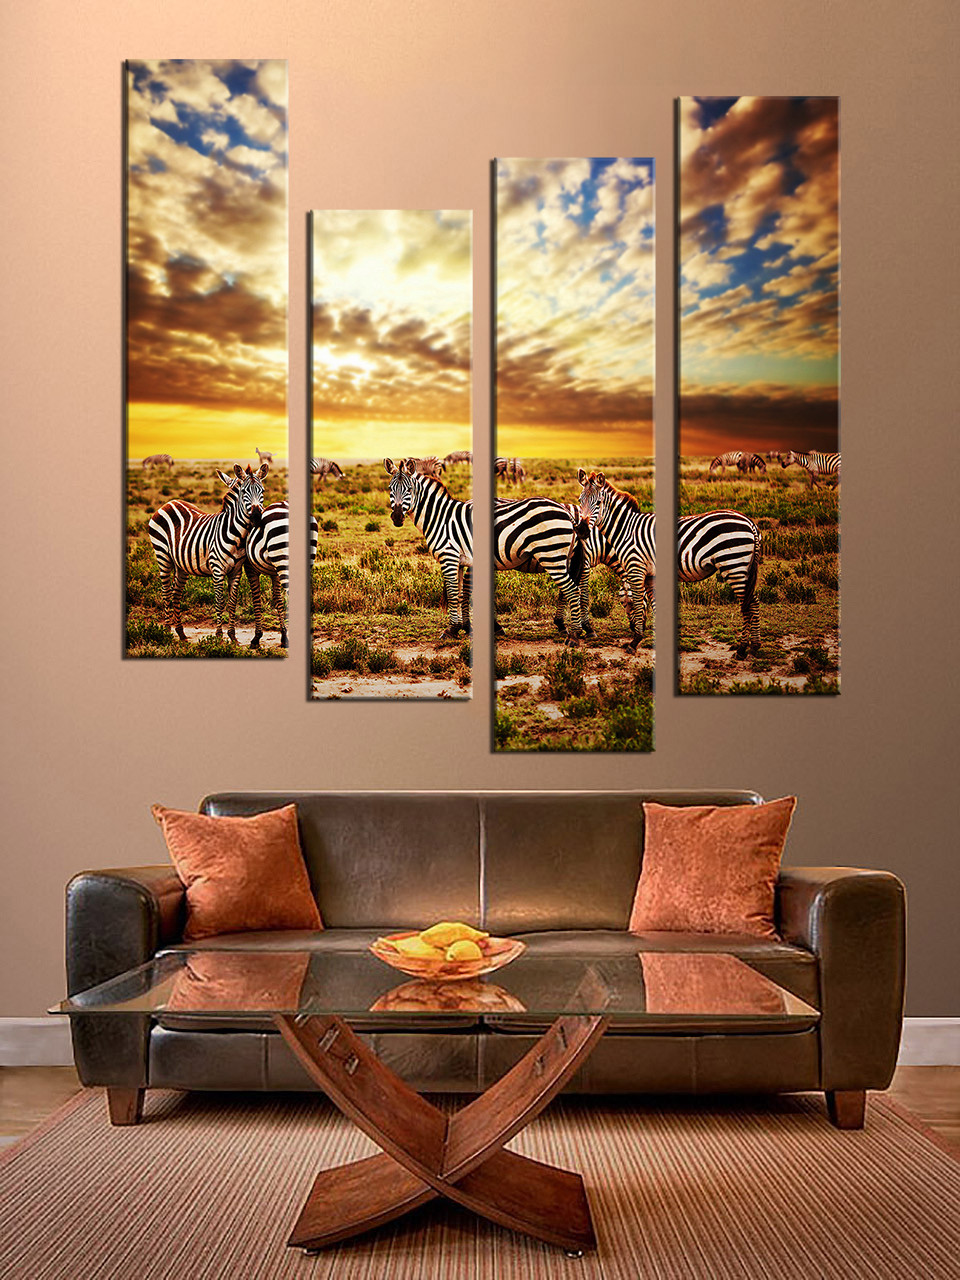 Living Room Decor, 4 Piece Wall Art, Zebra Pictures, Animal Art, Wildlife